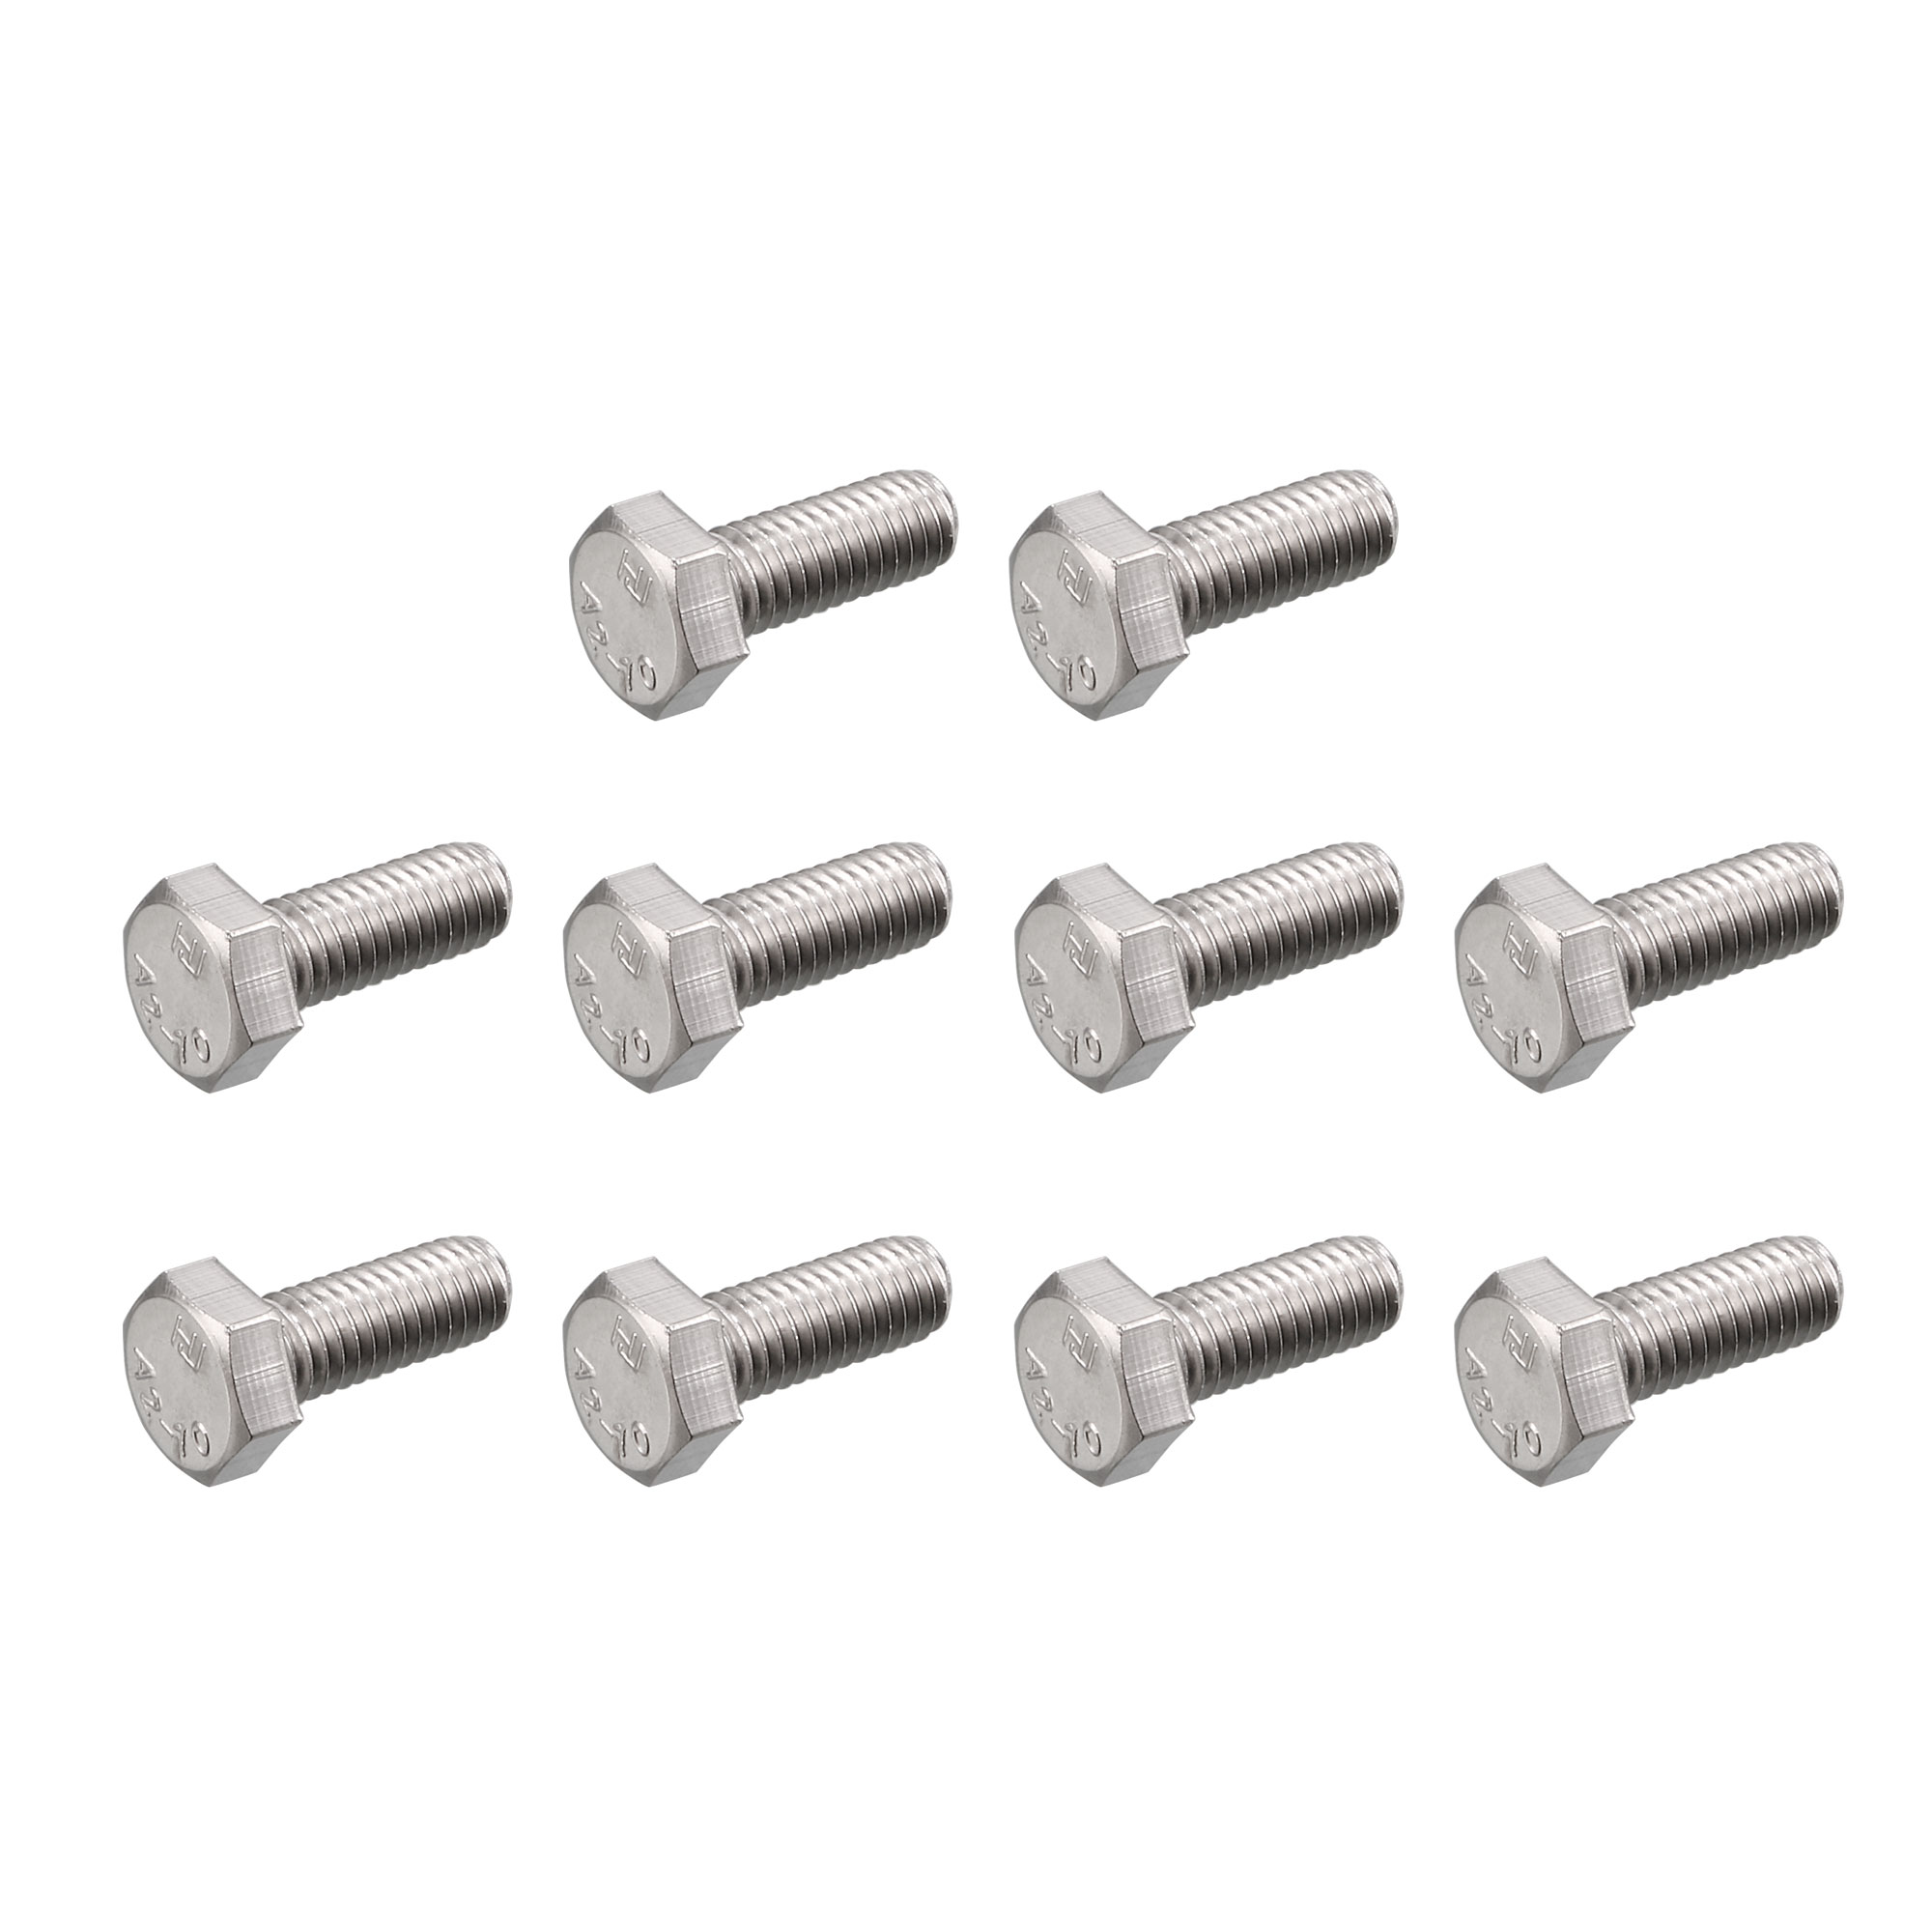 M6 x 16mm Metric 304 Stainless Steel Fully Threaded Hex Head Screw Bolt 30 Pcs